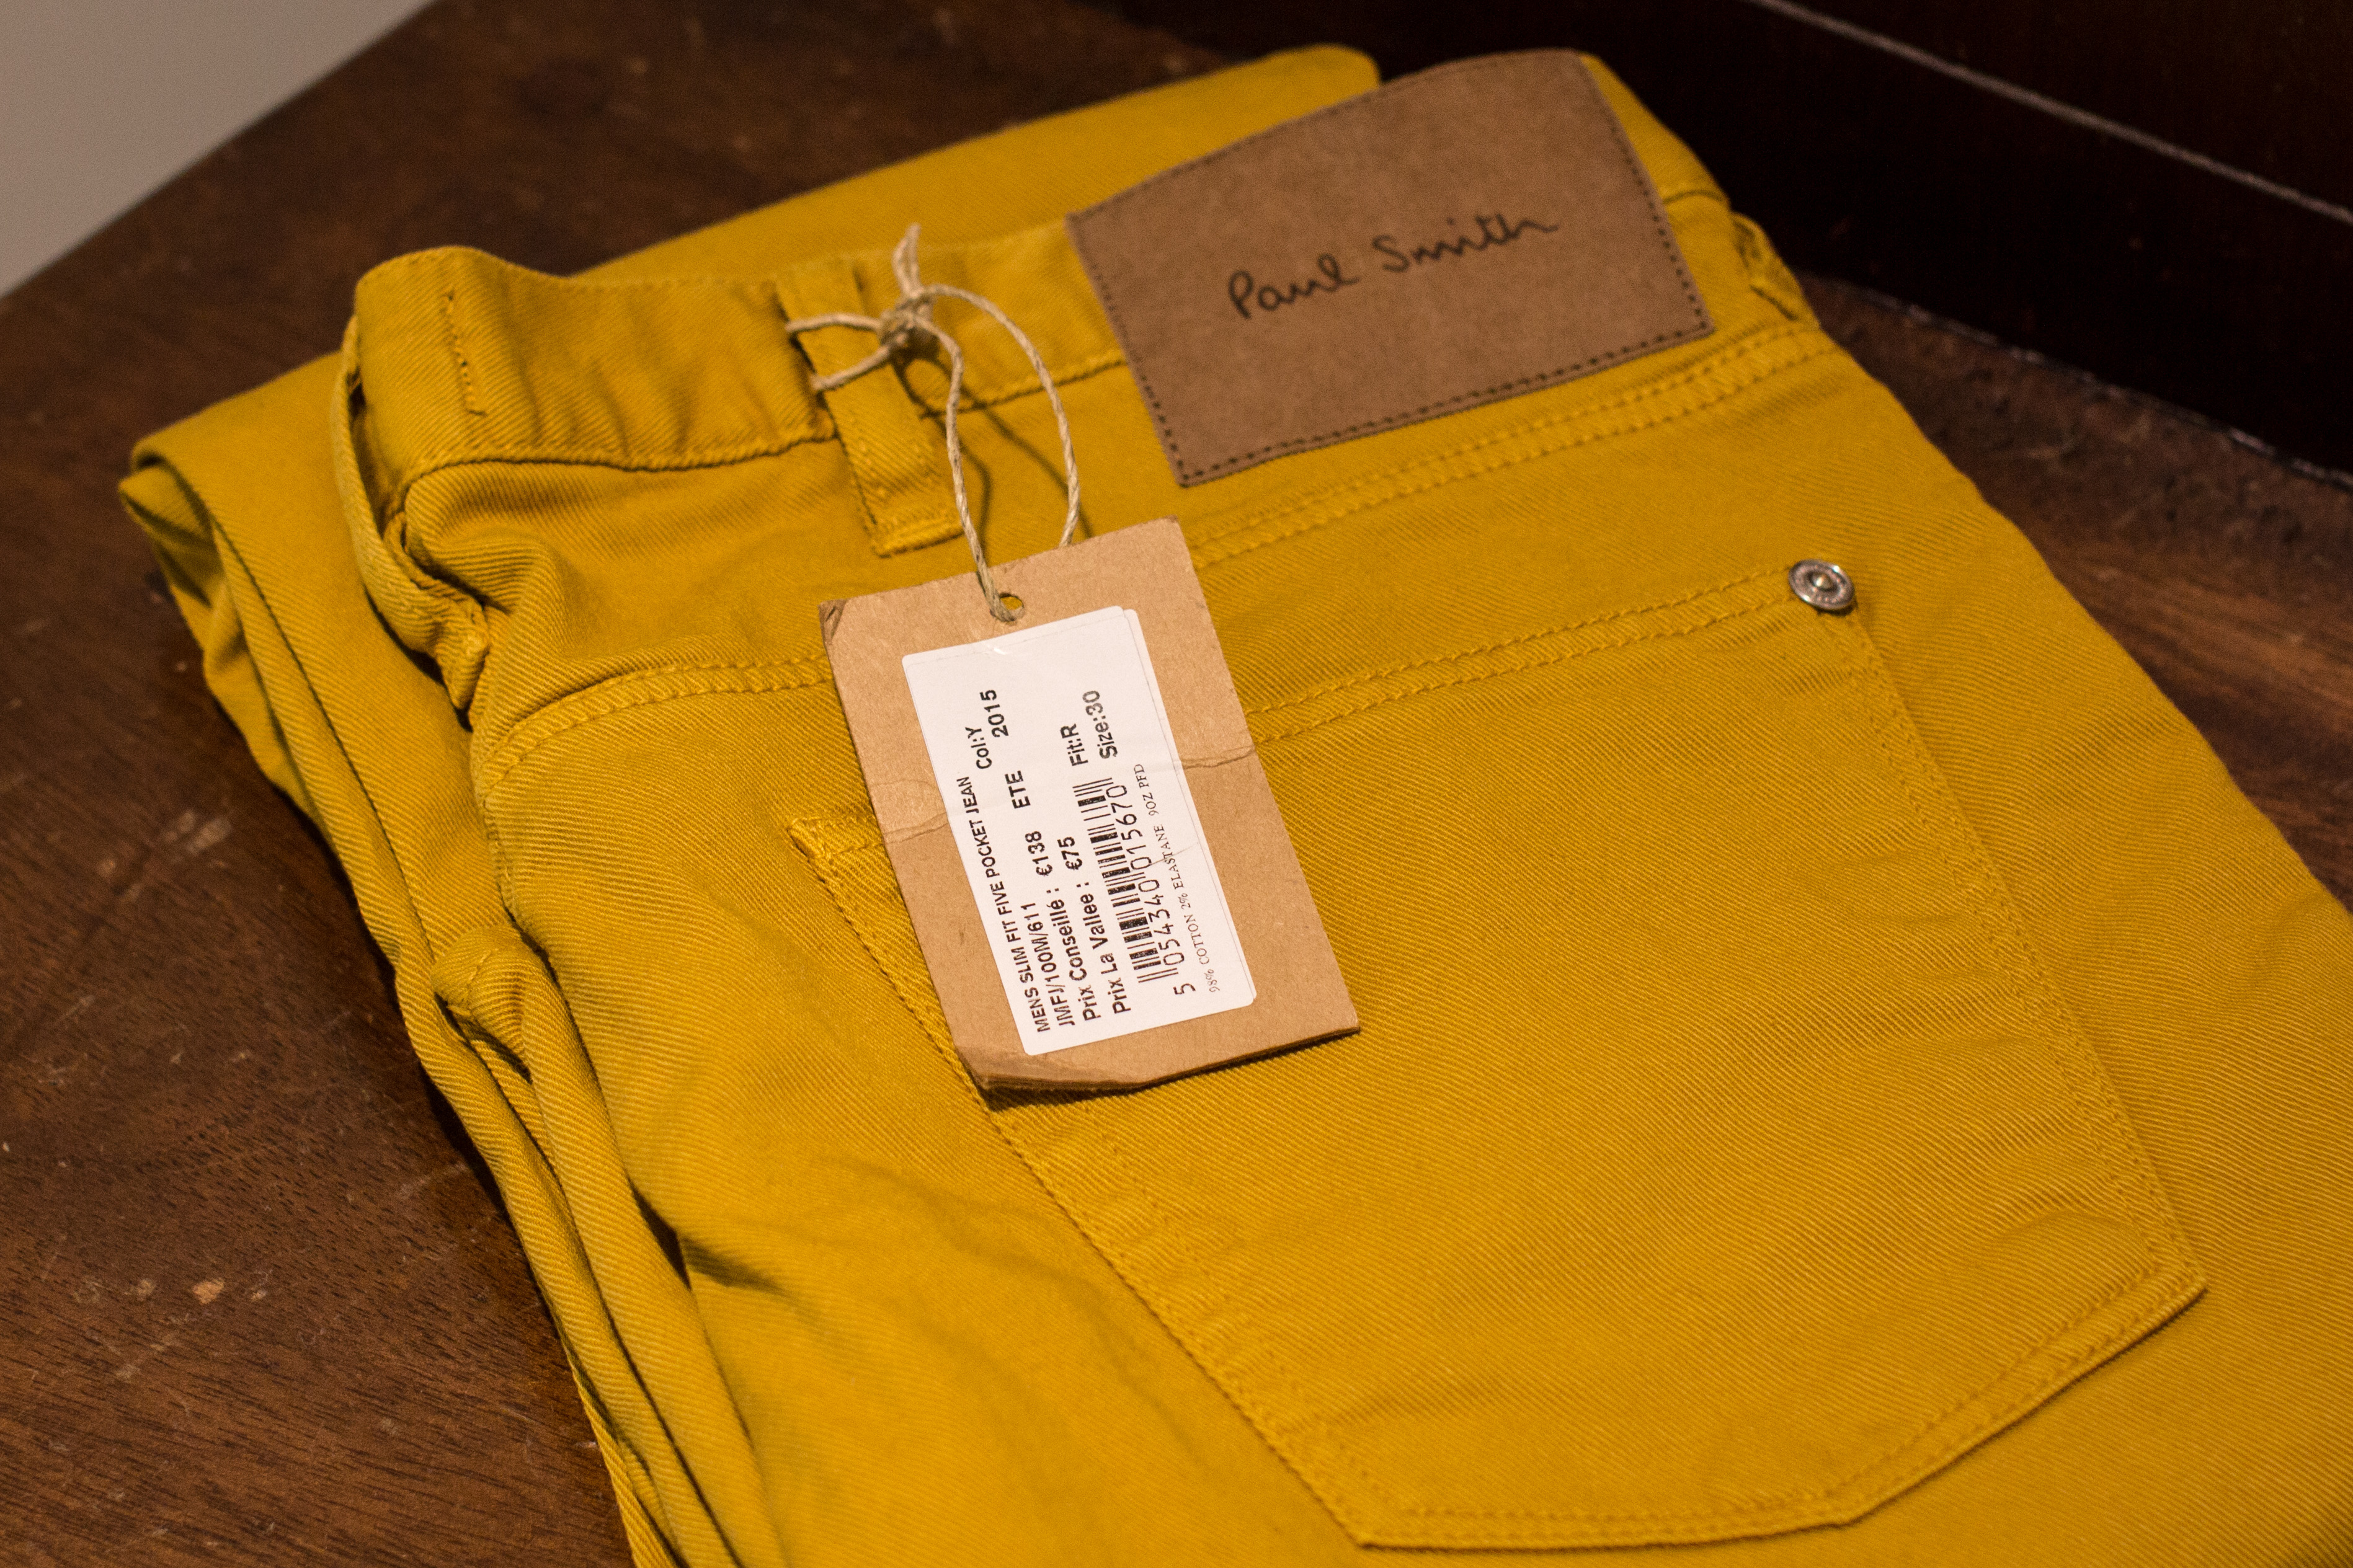 Mustard trousers! My favourite flavour